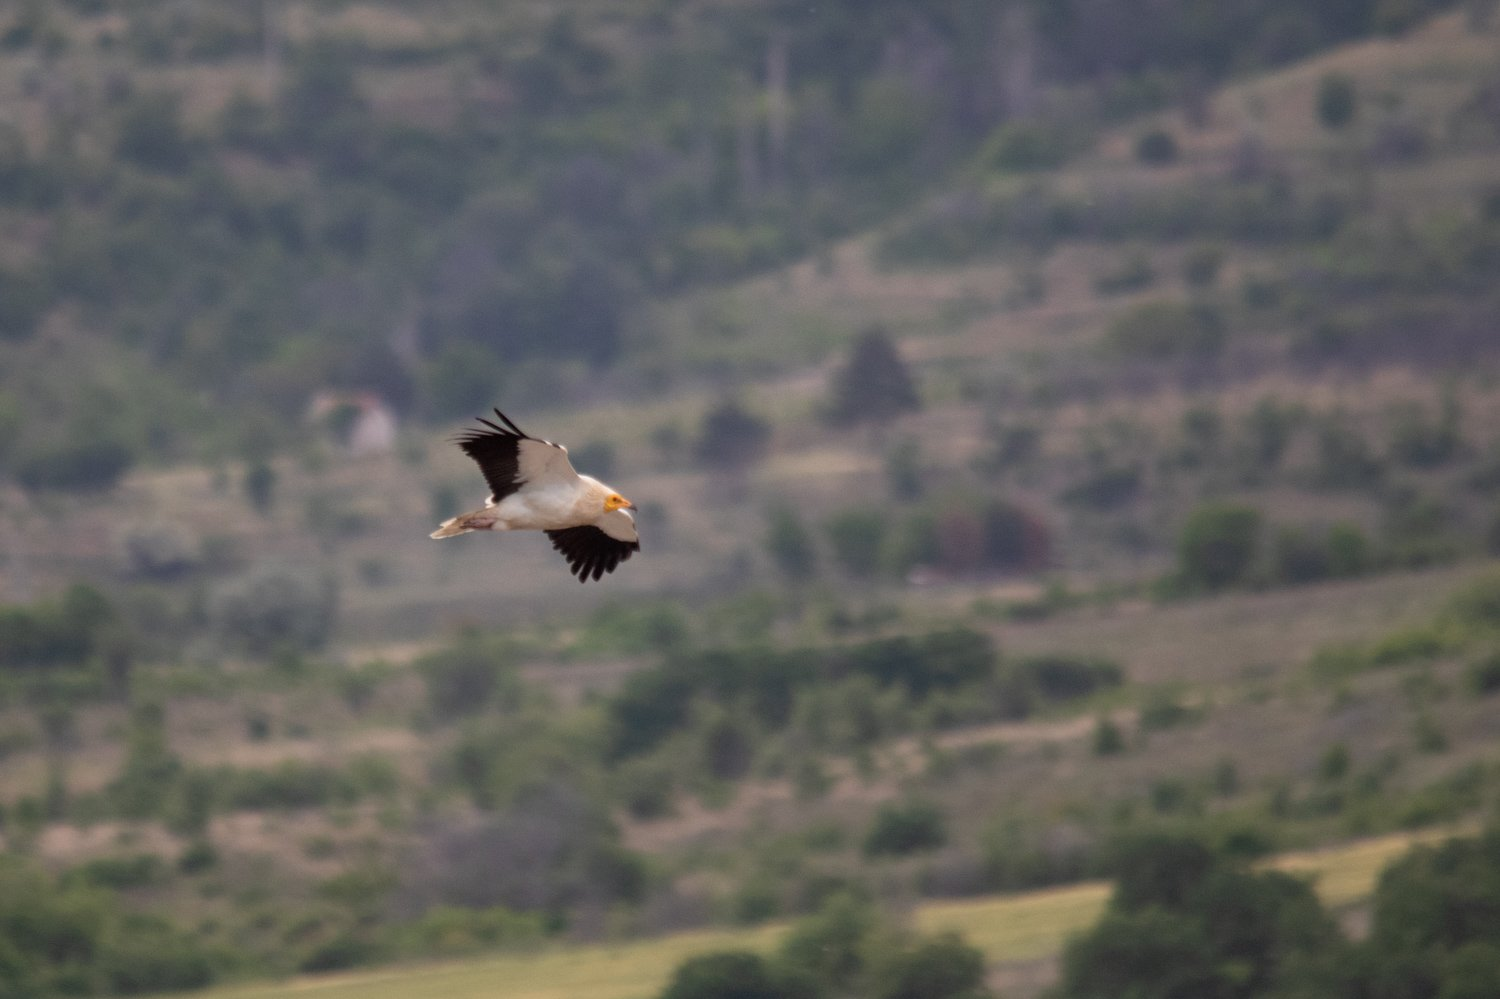 Egyptian Vulture in flight, photographed in the Republic of North Macedonia